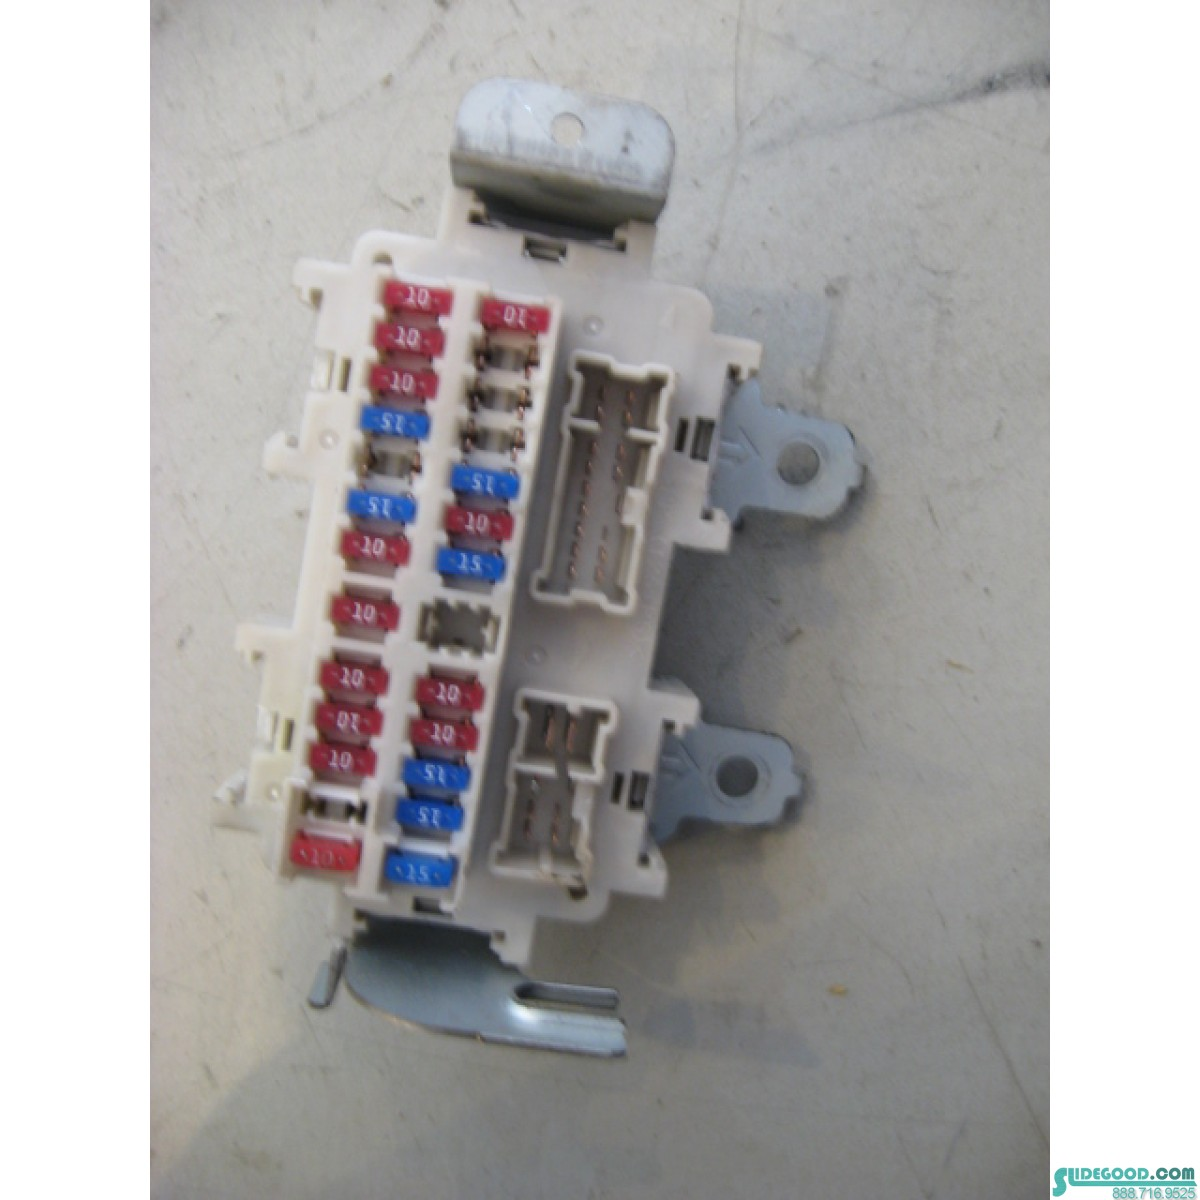 8098_01 nissan 350z interior fuse box r8098  at bayanpartner.co